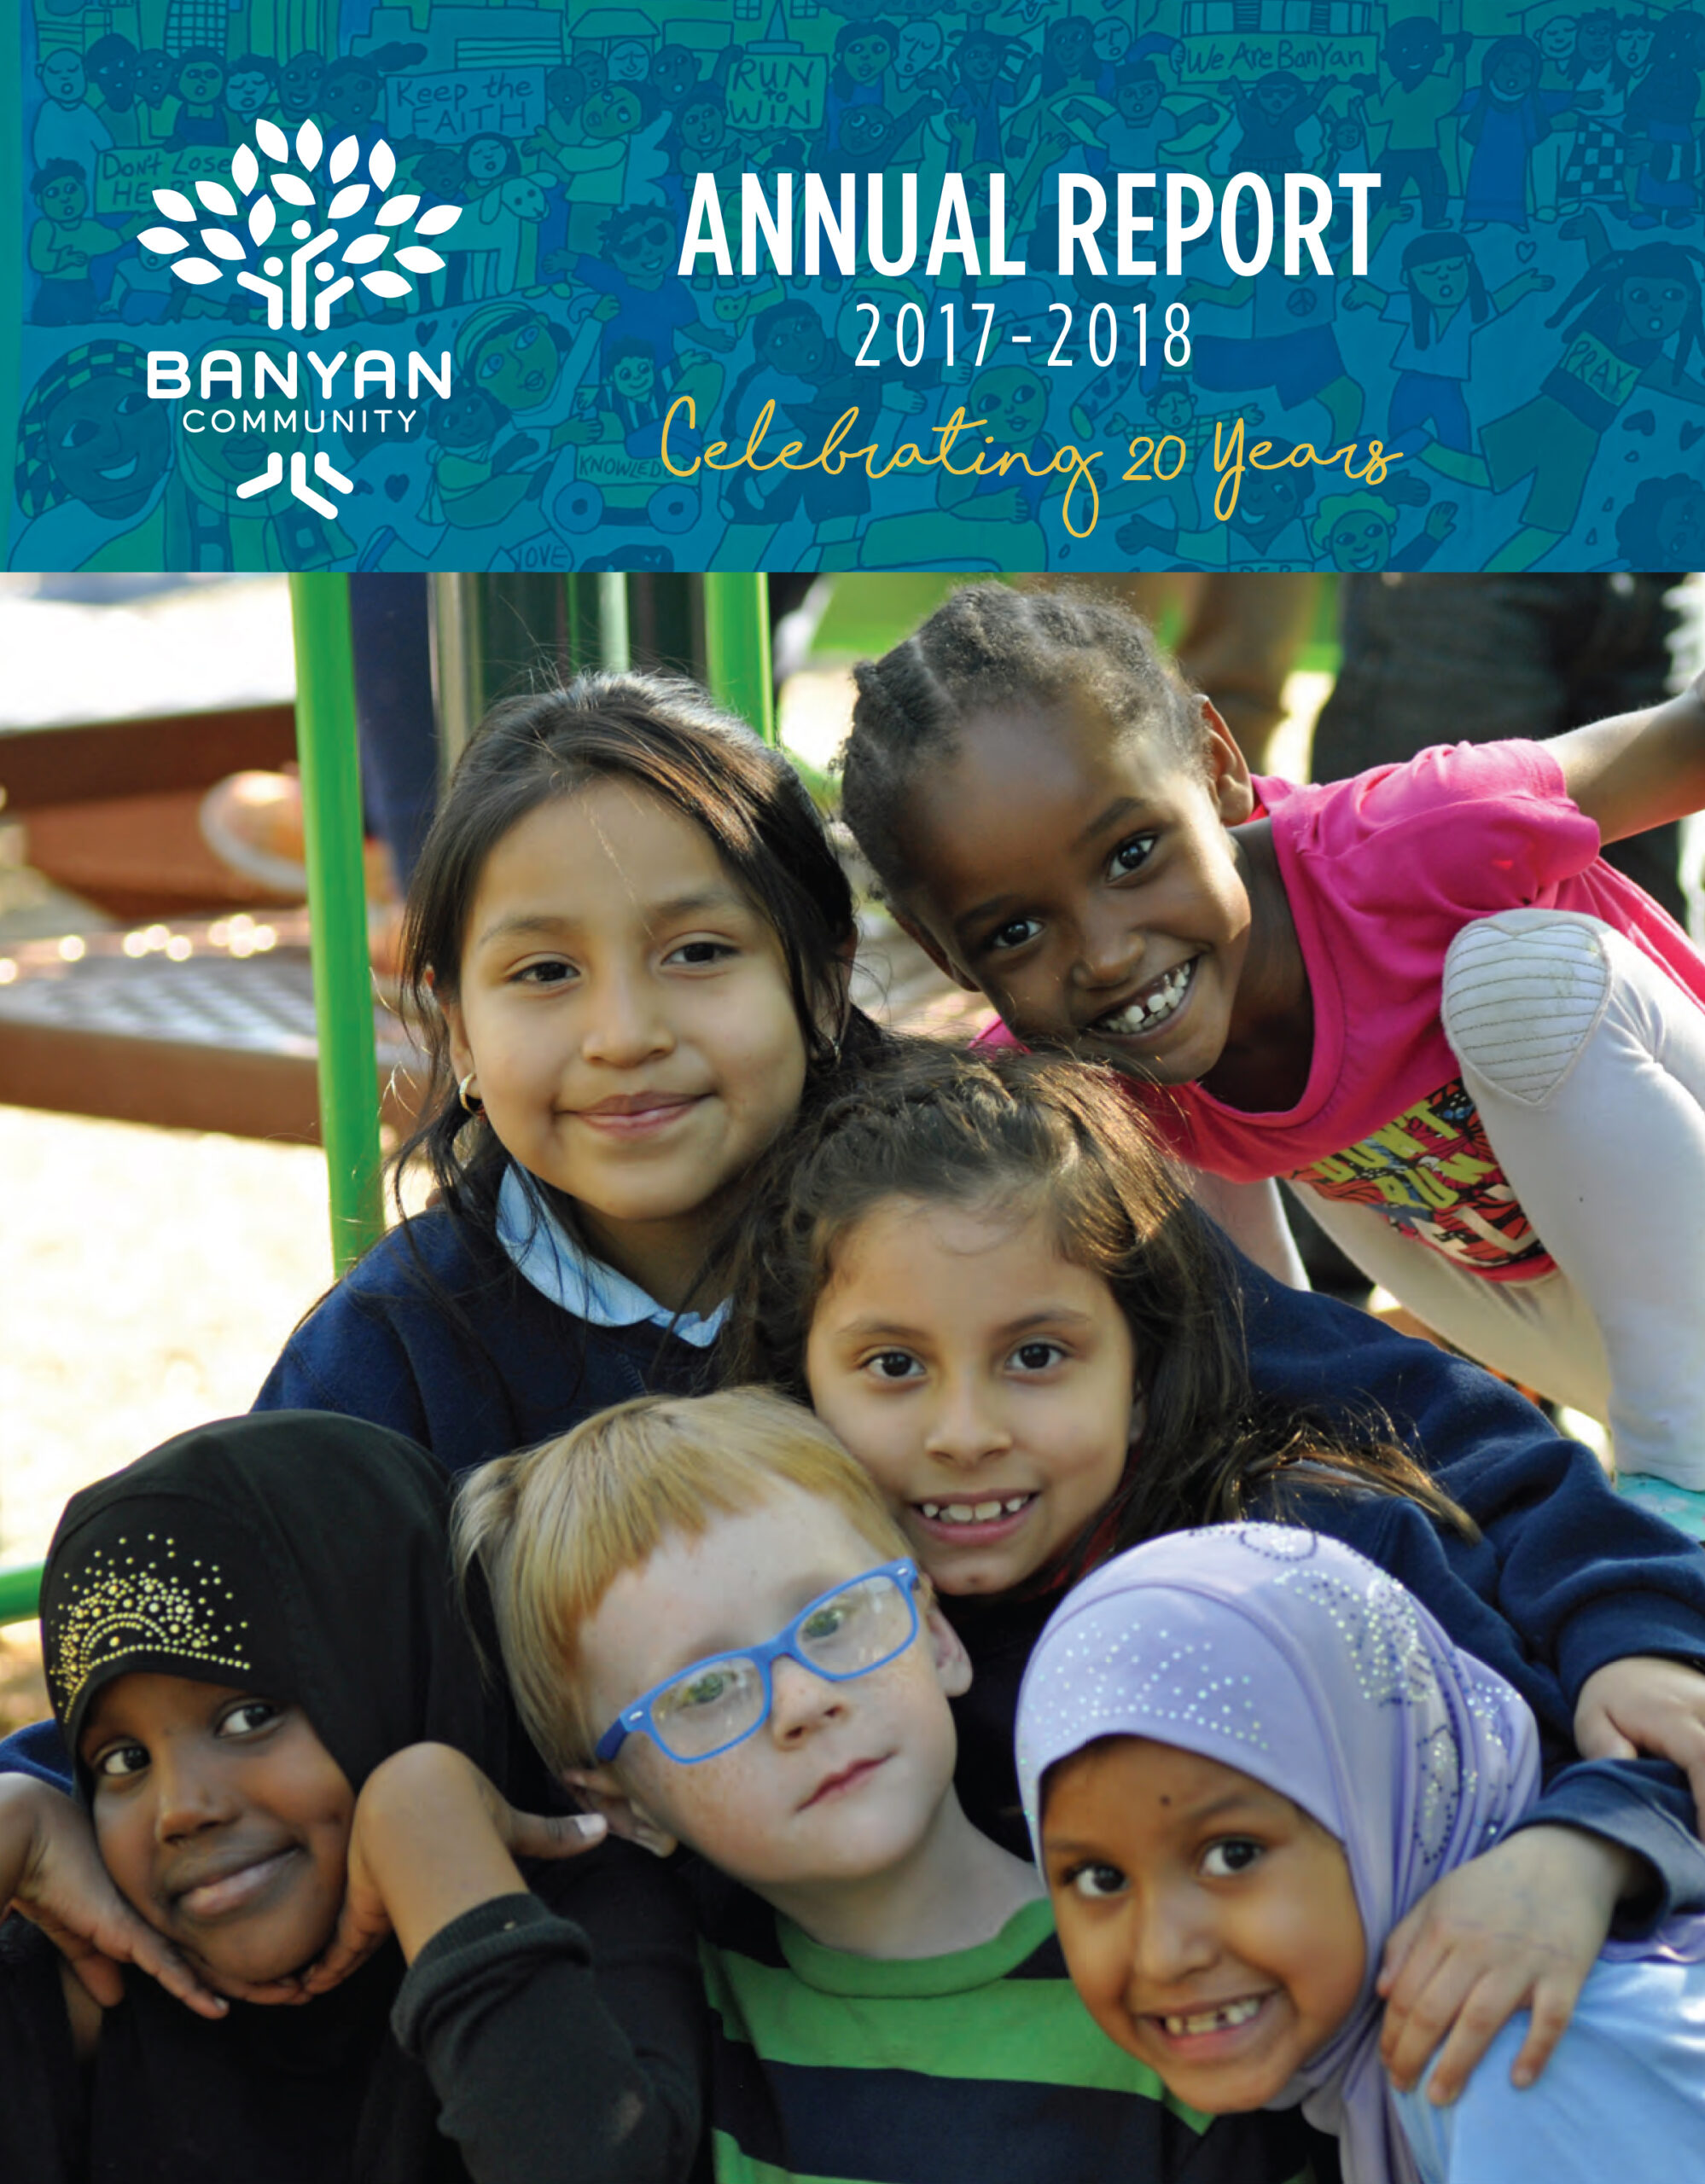 Banyan Community's 2017-2018 annual report cover